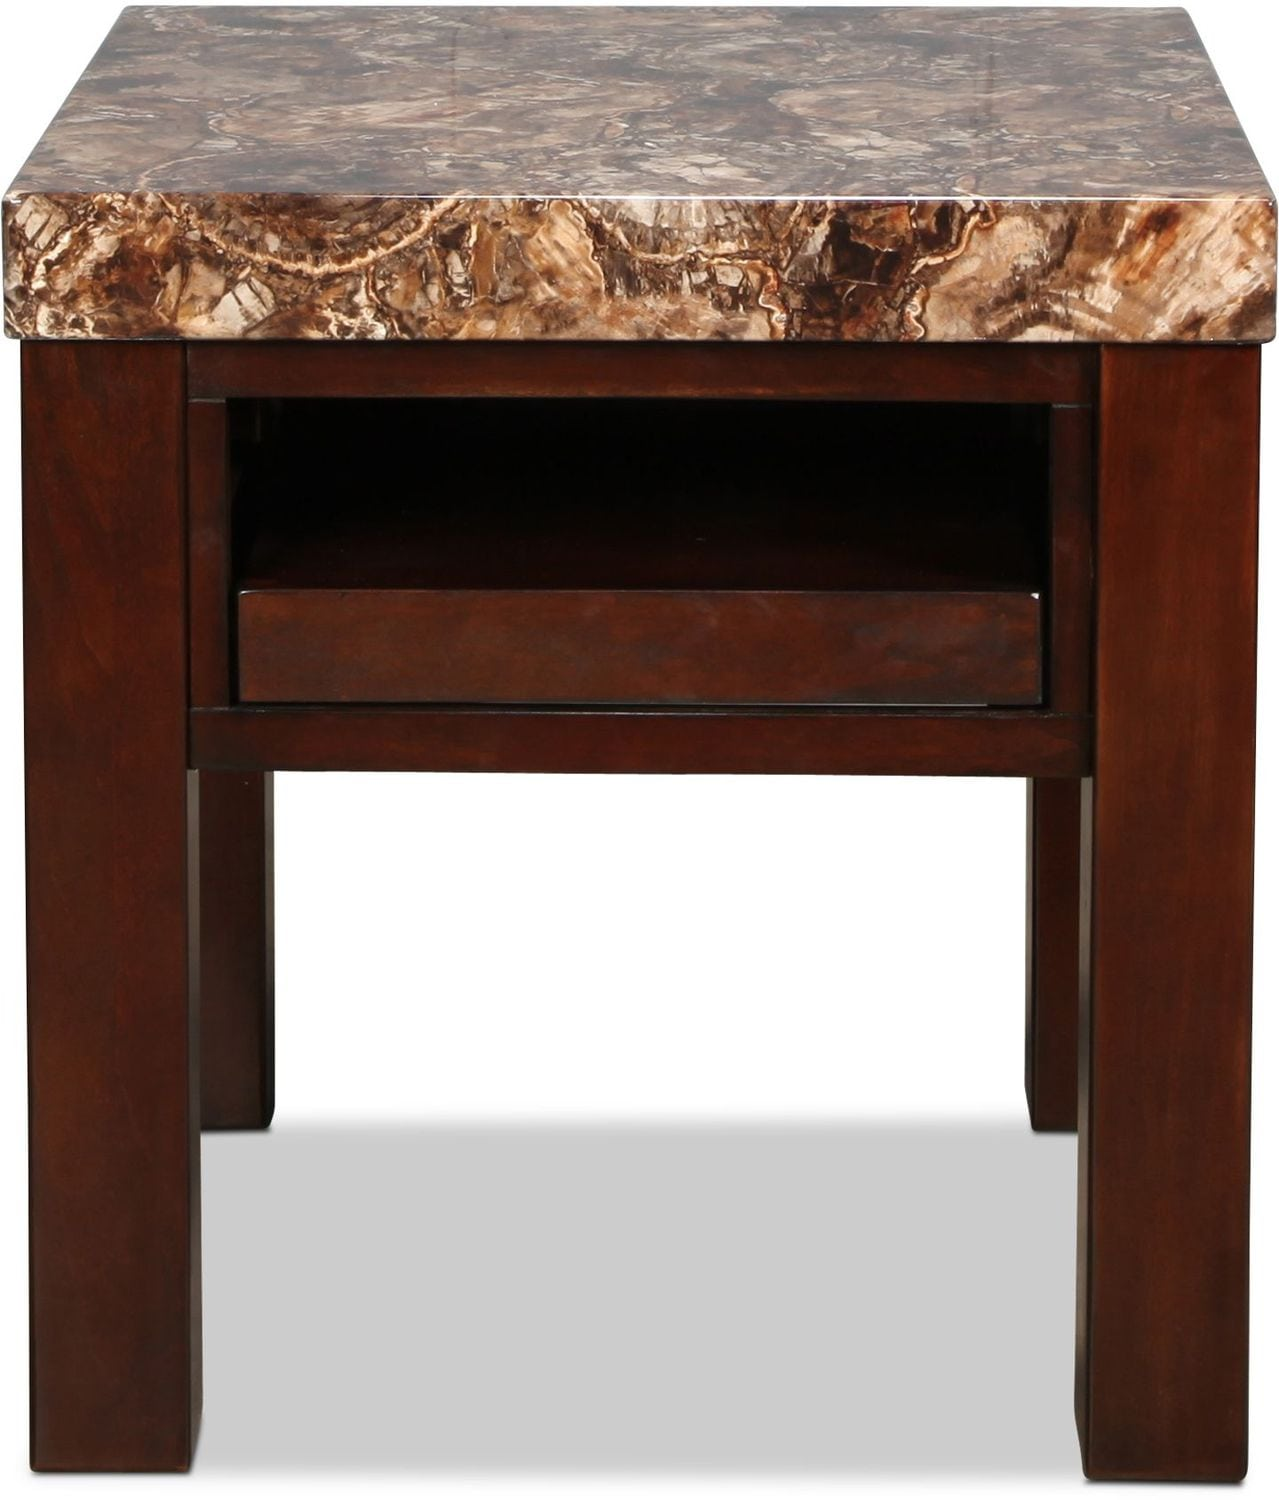 Accent and Occasional Furniture - Cabo End Table - Brown Cherry with Faux Marble